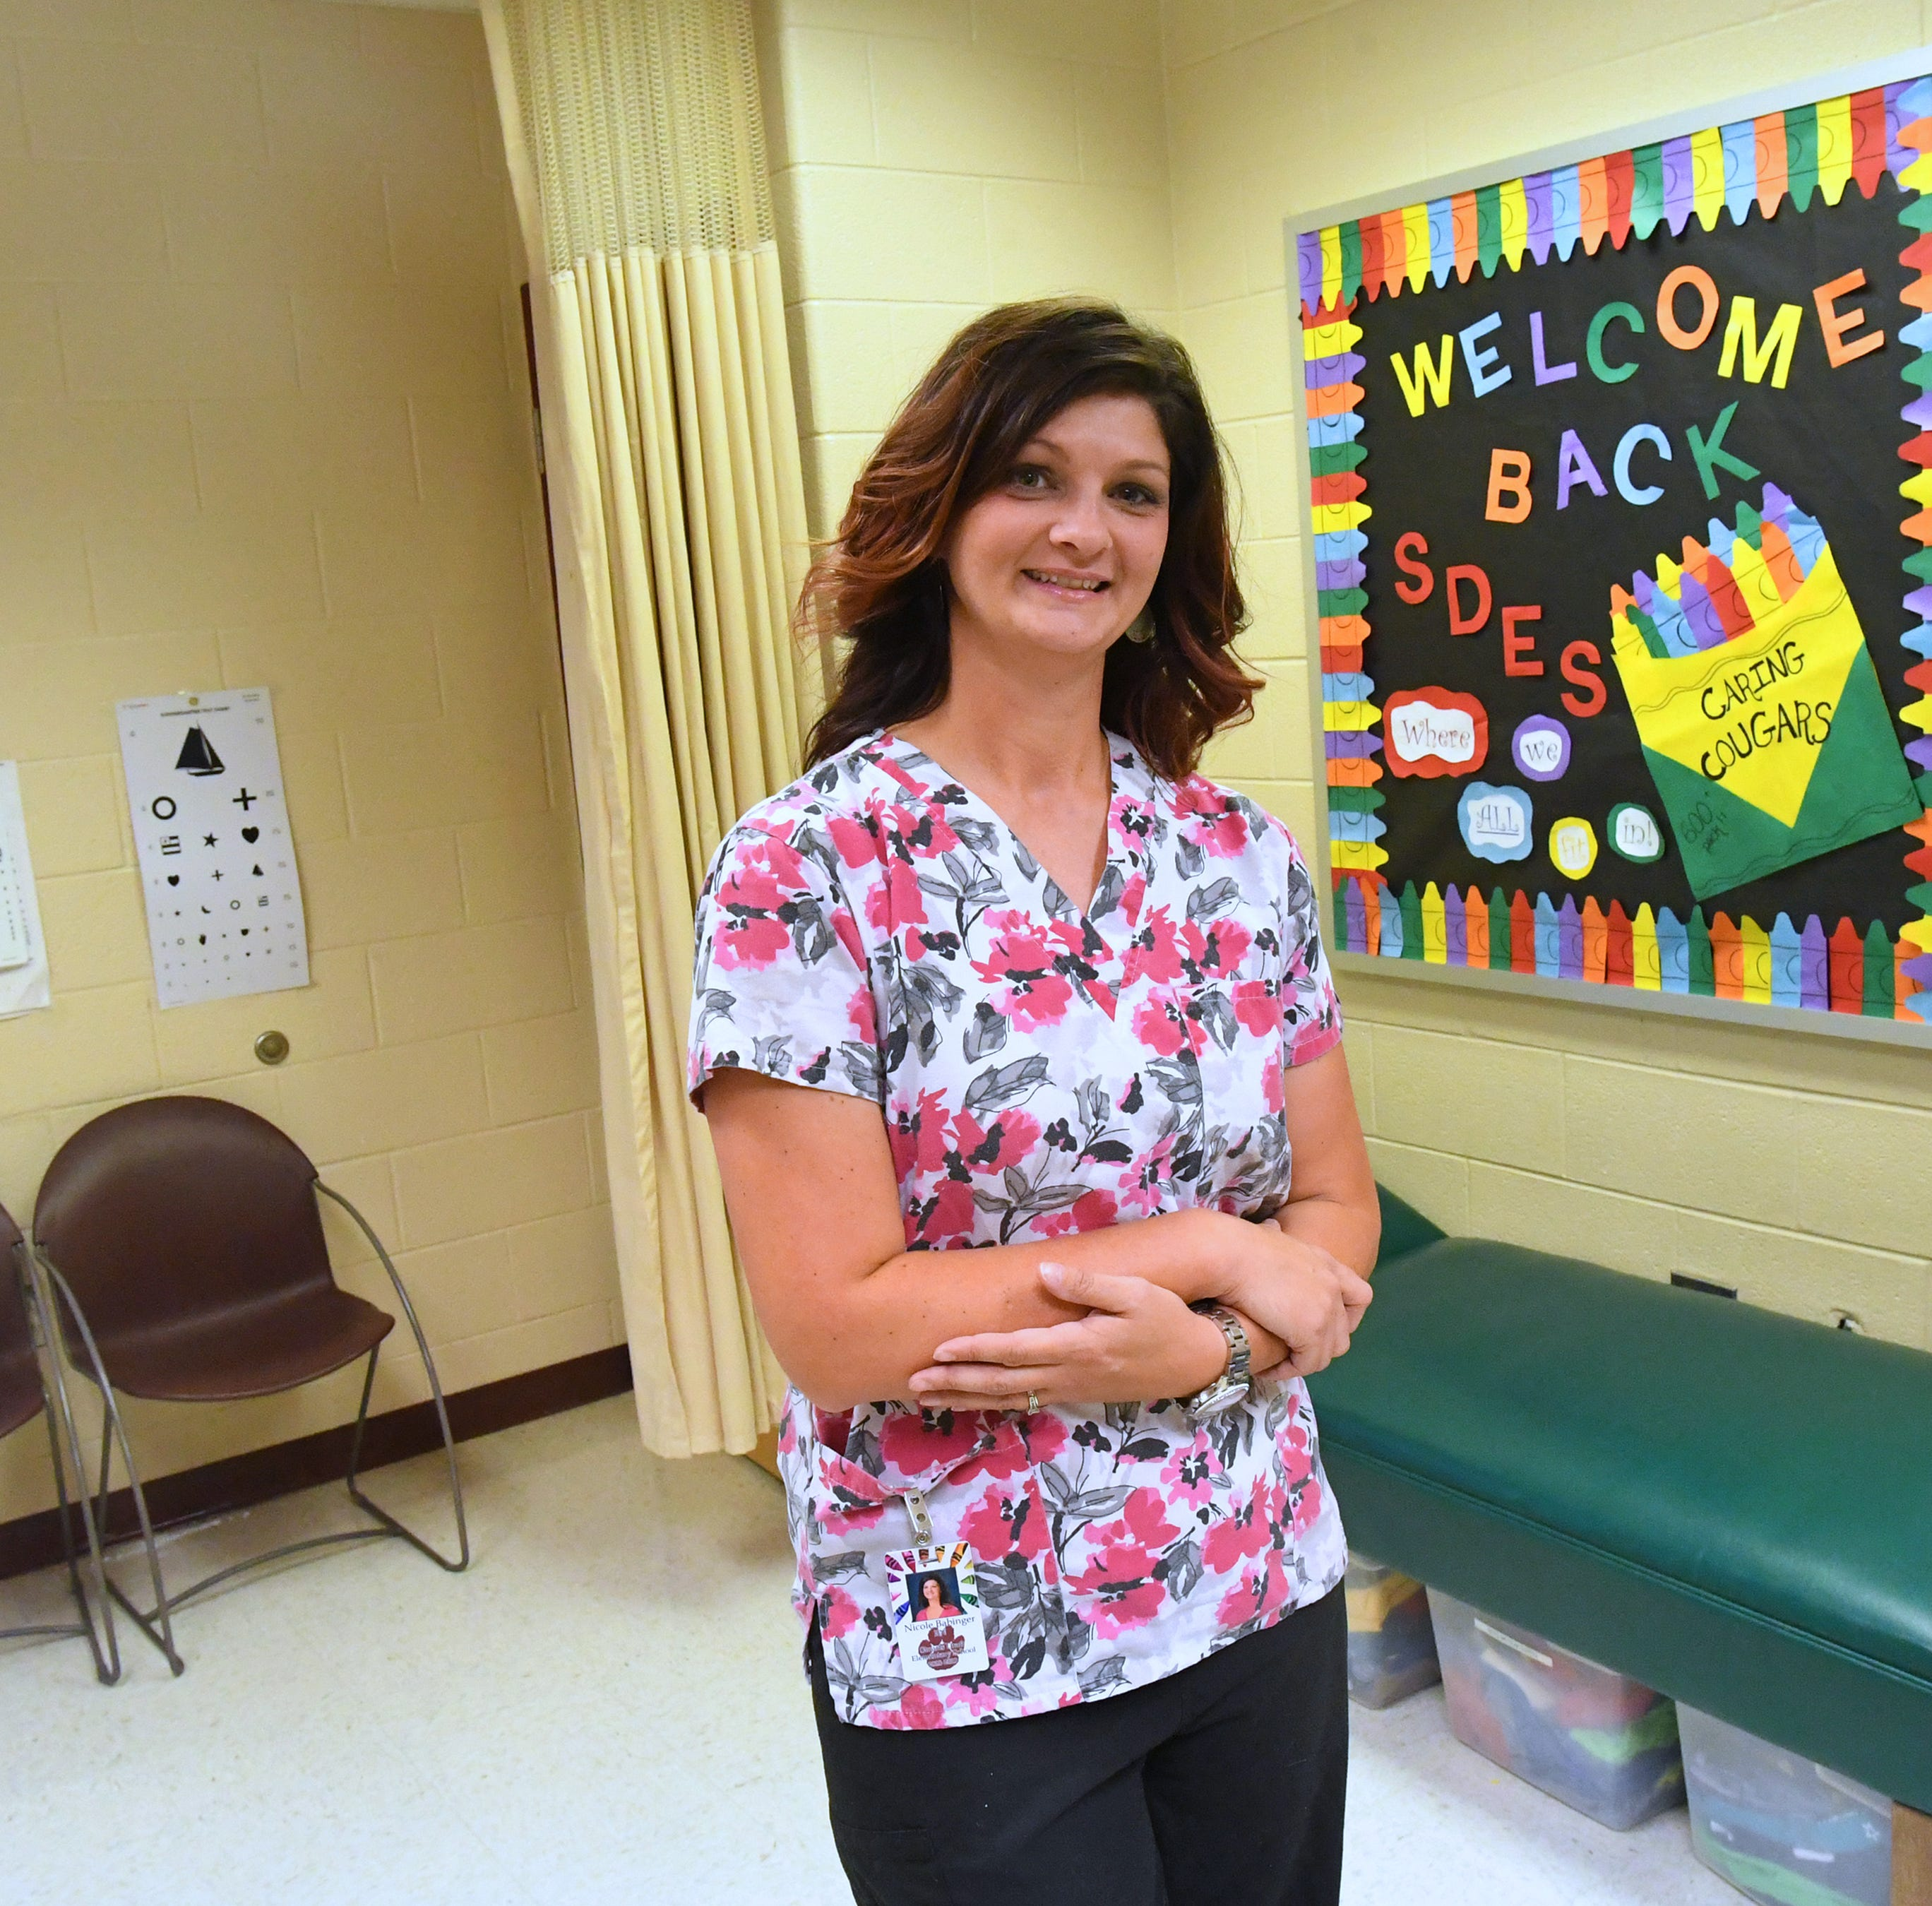 Nurses share the real back-to-school health concerns